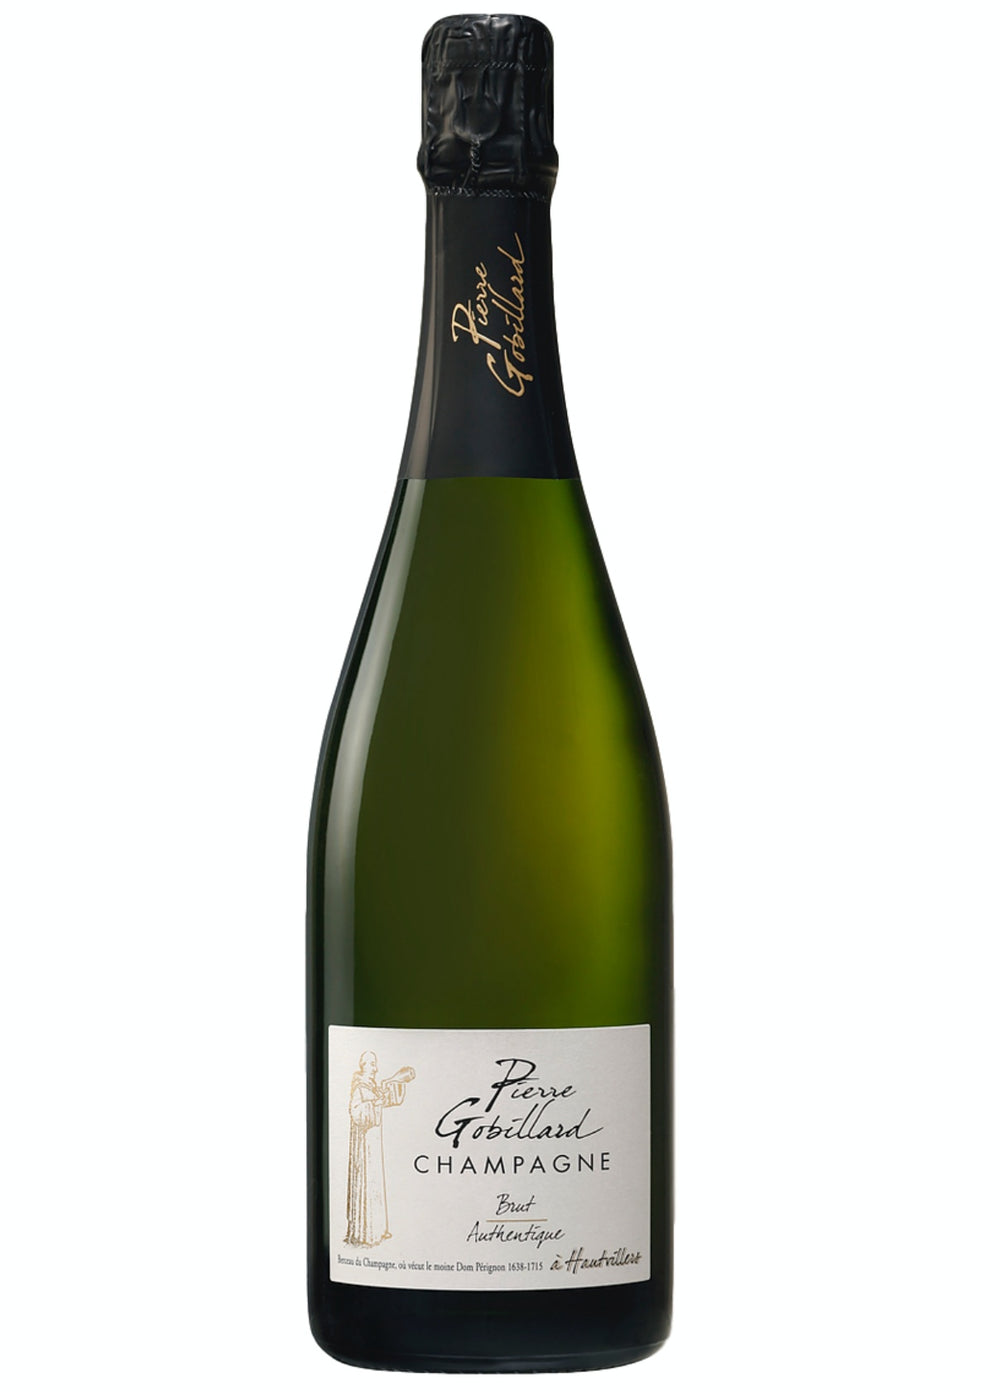 VECKANS FYND - Pierre Gobillard - Brut Authentique